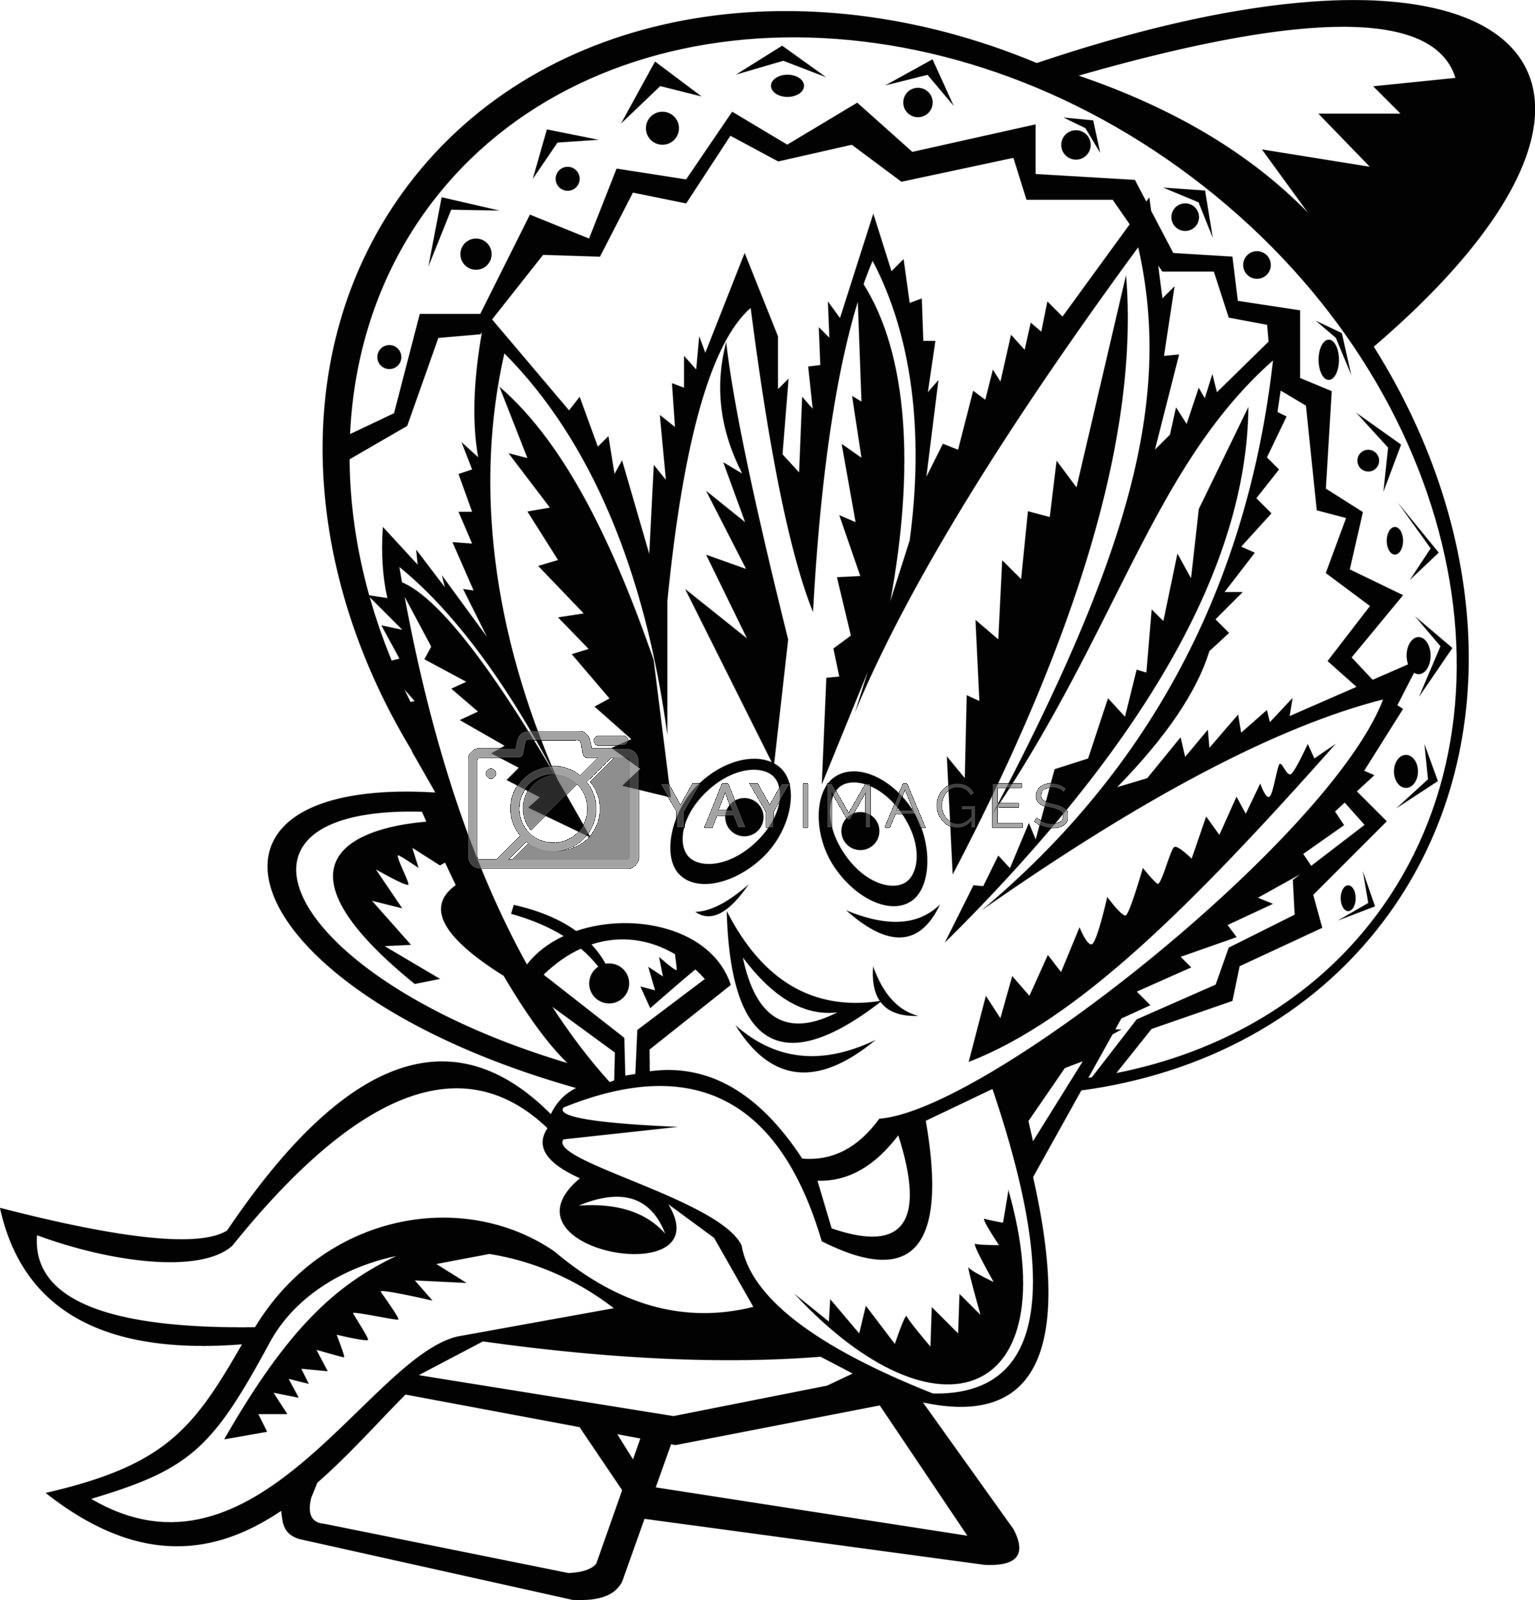 Retro woodcut style illustration of an Agave, genus of the family Asparagaceae, native to Mexico, wearing Mexican sombrero, sitting and sipping martini on isolated background done in black and white.